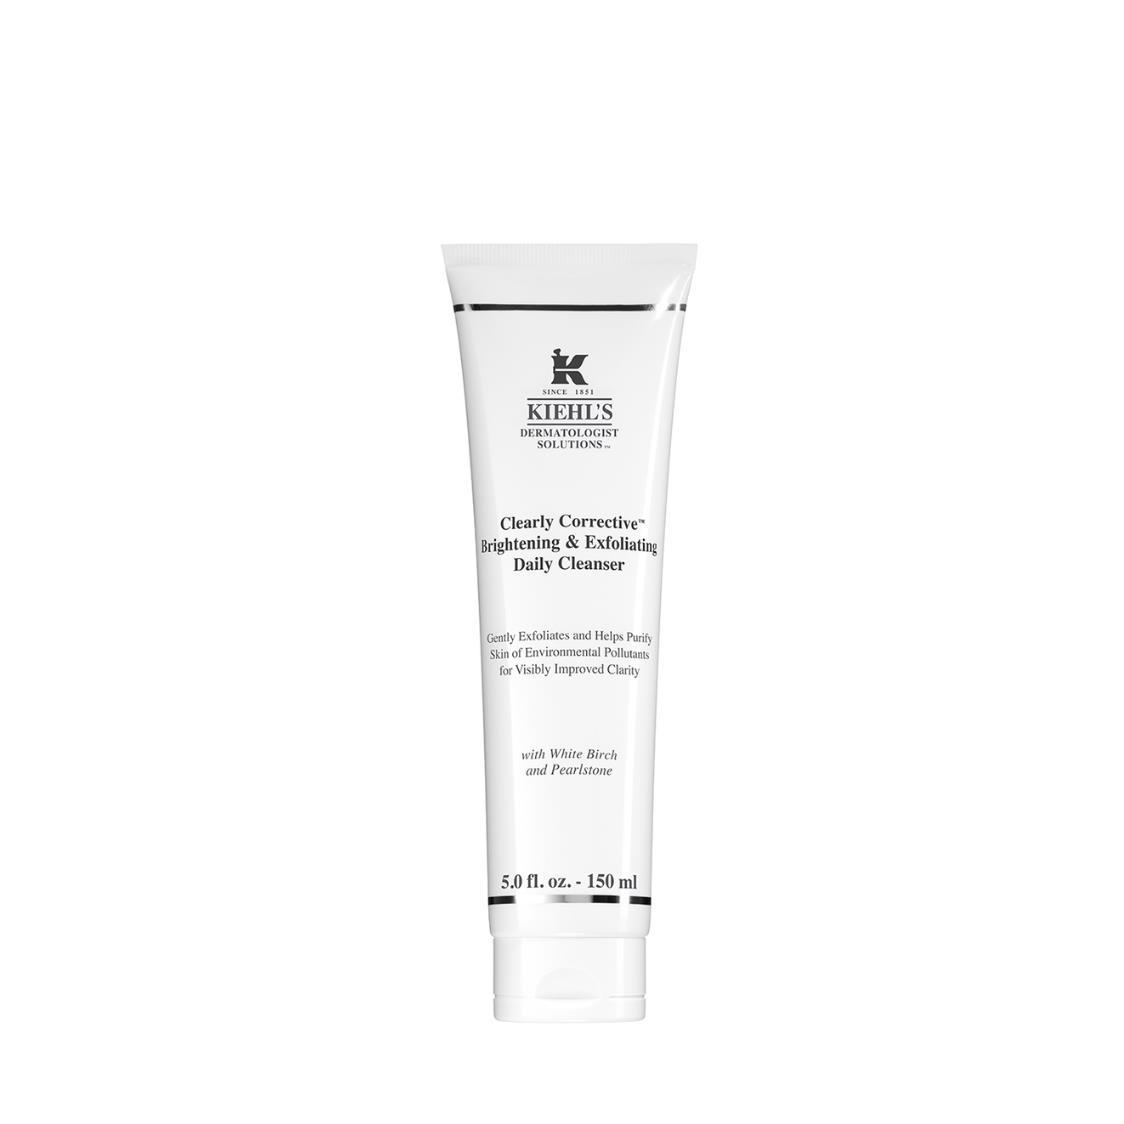 Kiehls Since 1851 Clearly Corrective Brightening  Exfoliating Daily Cleanser